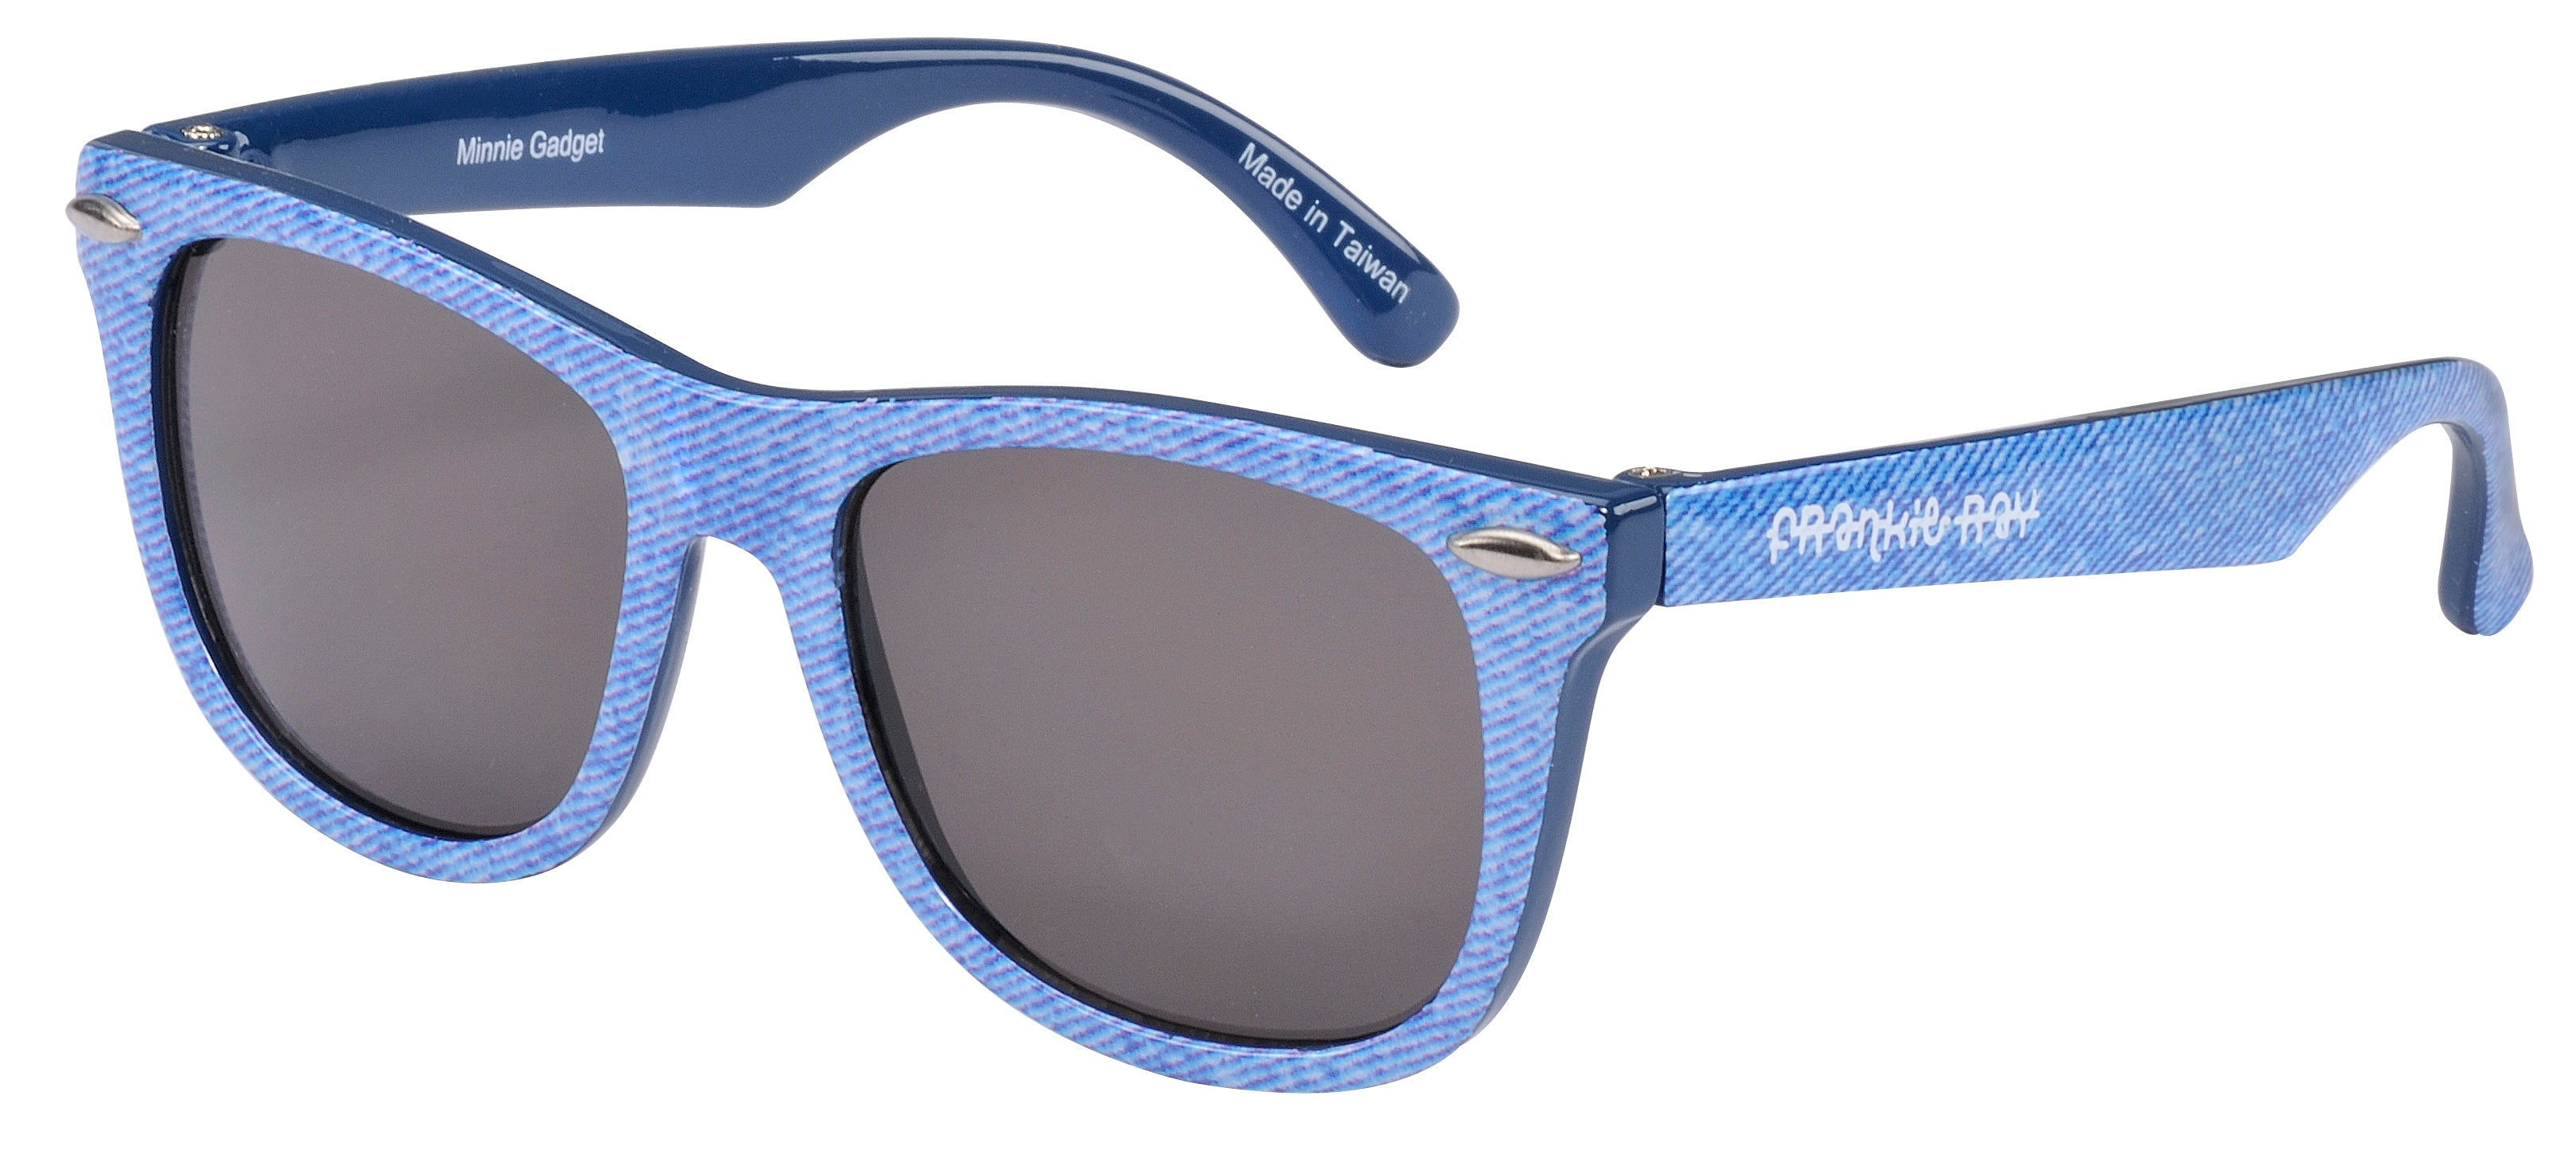 Frankie Ray Sunglasses - Minnie Gadget Denim (baby)